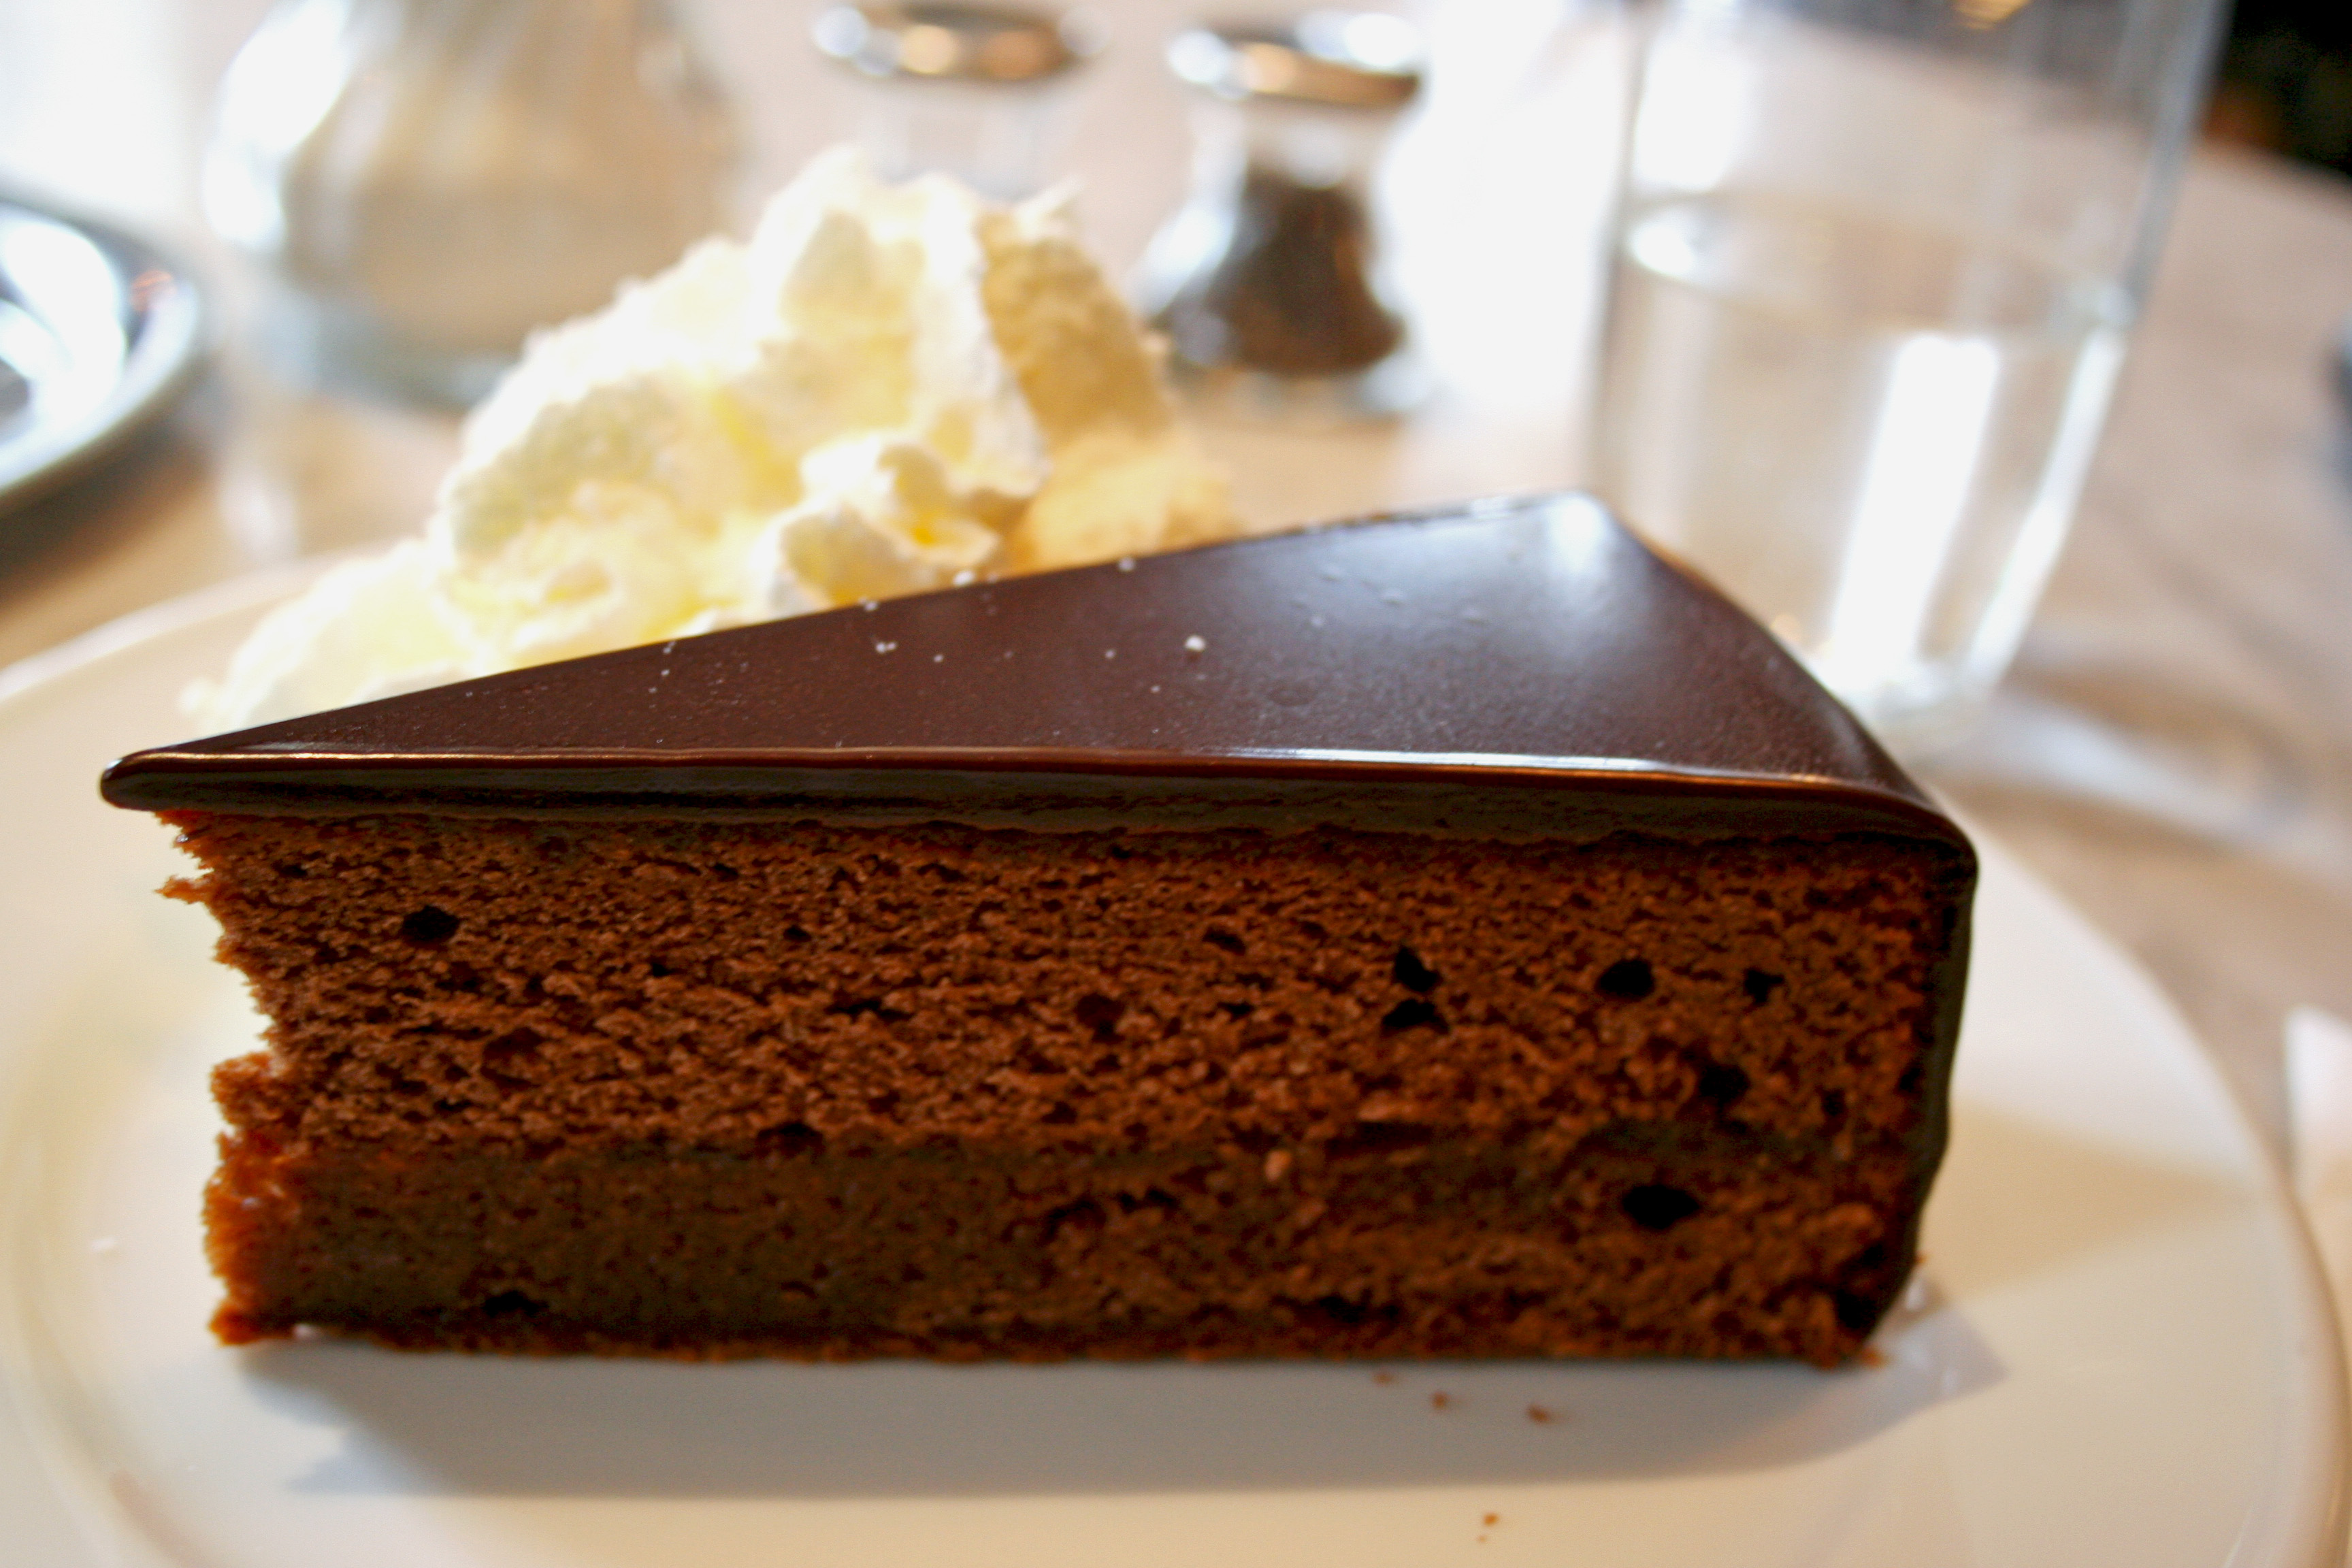 Franz Sacher Sachertorte Viennese Specialty Vienna Austria Chocolate Cake Cream Apricot Jam Recipe Secret Whipped Cream Dessert